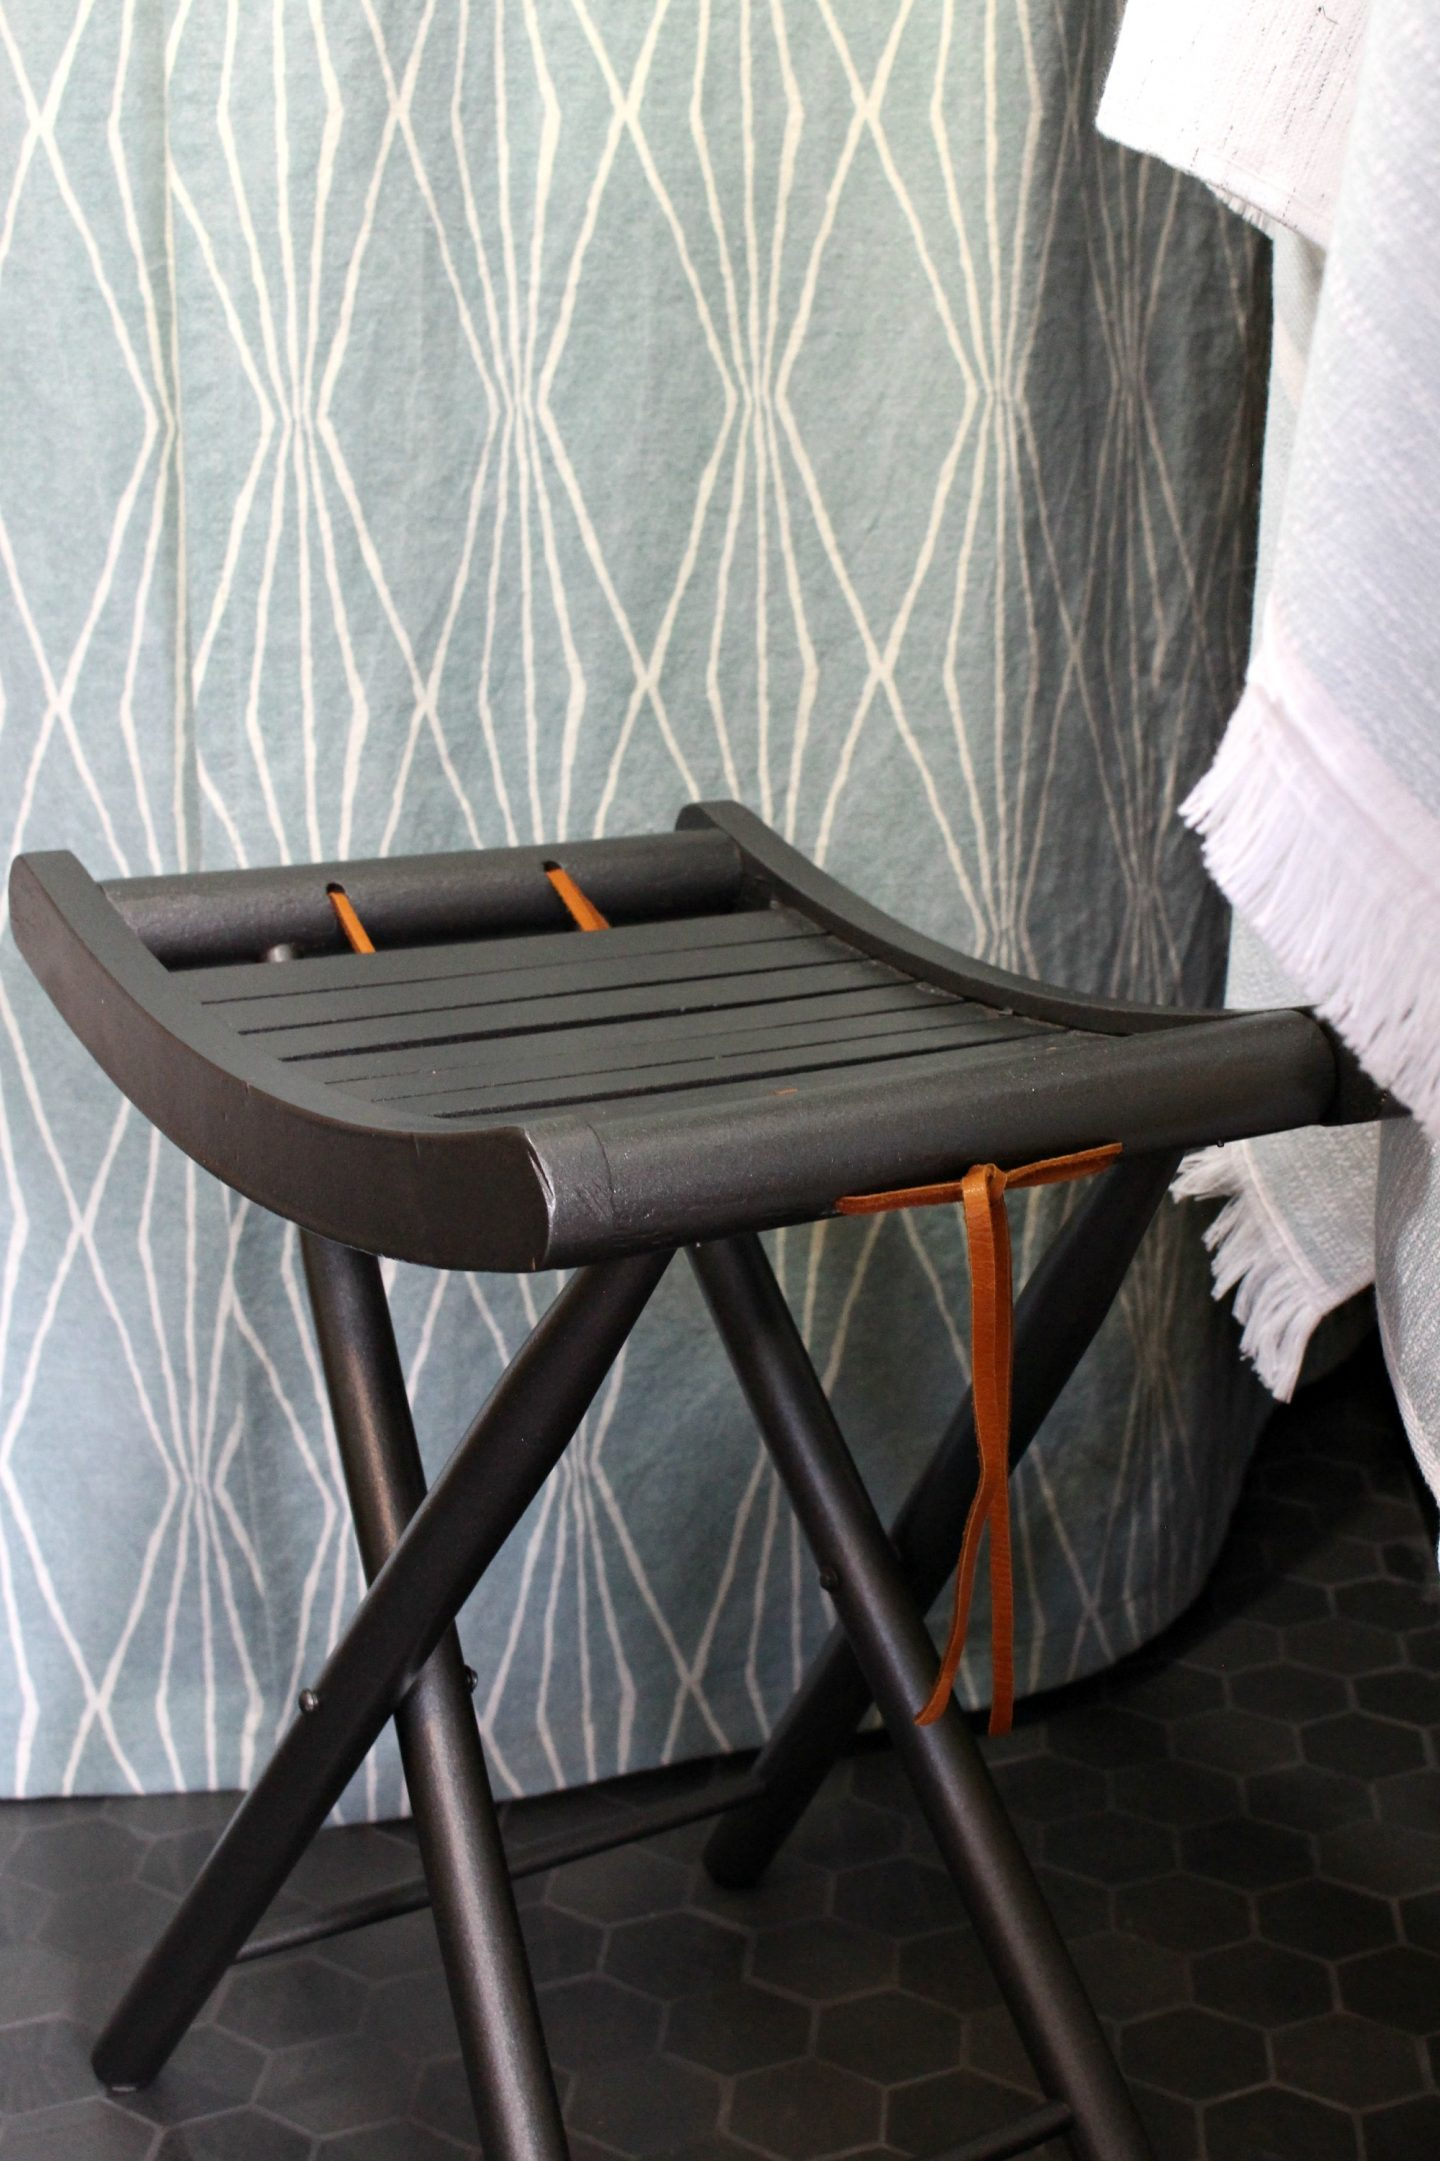 Retro Folding Stool Makeover   Before + After   Budget-friendly Furniture Makeover Vintage Upcycle Spray Paint Makeover #furnituremakeover #spraypaint #vintage